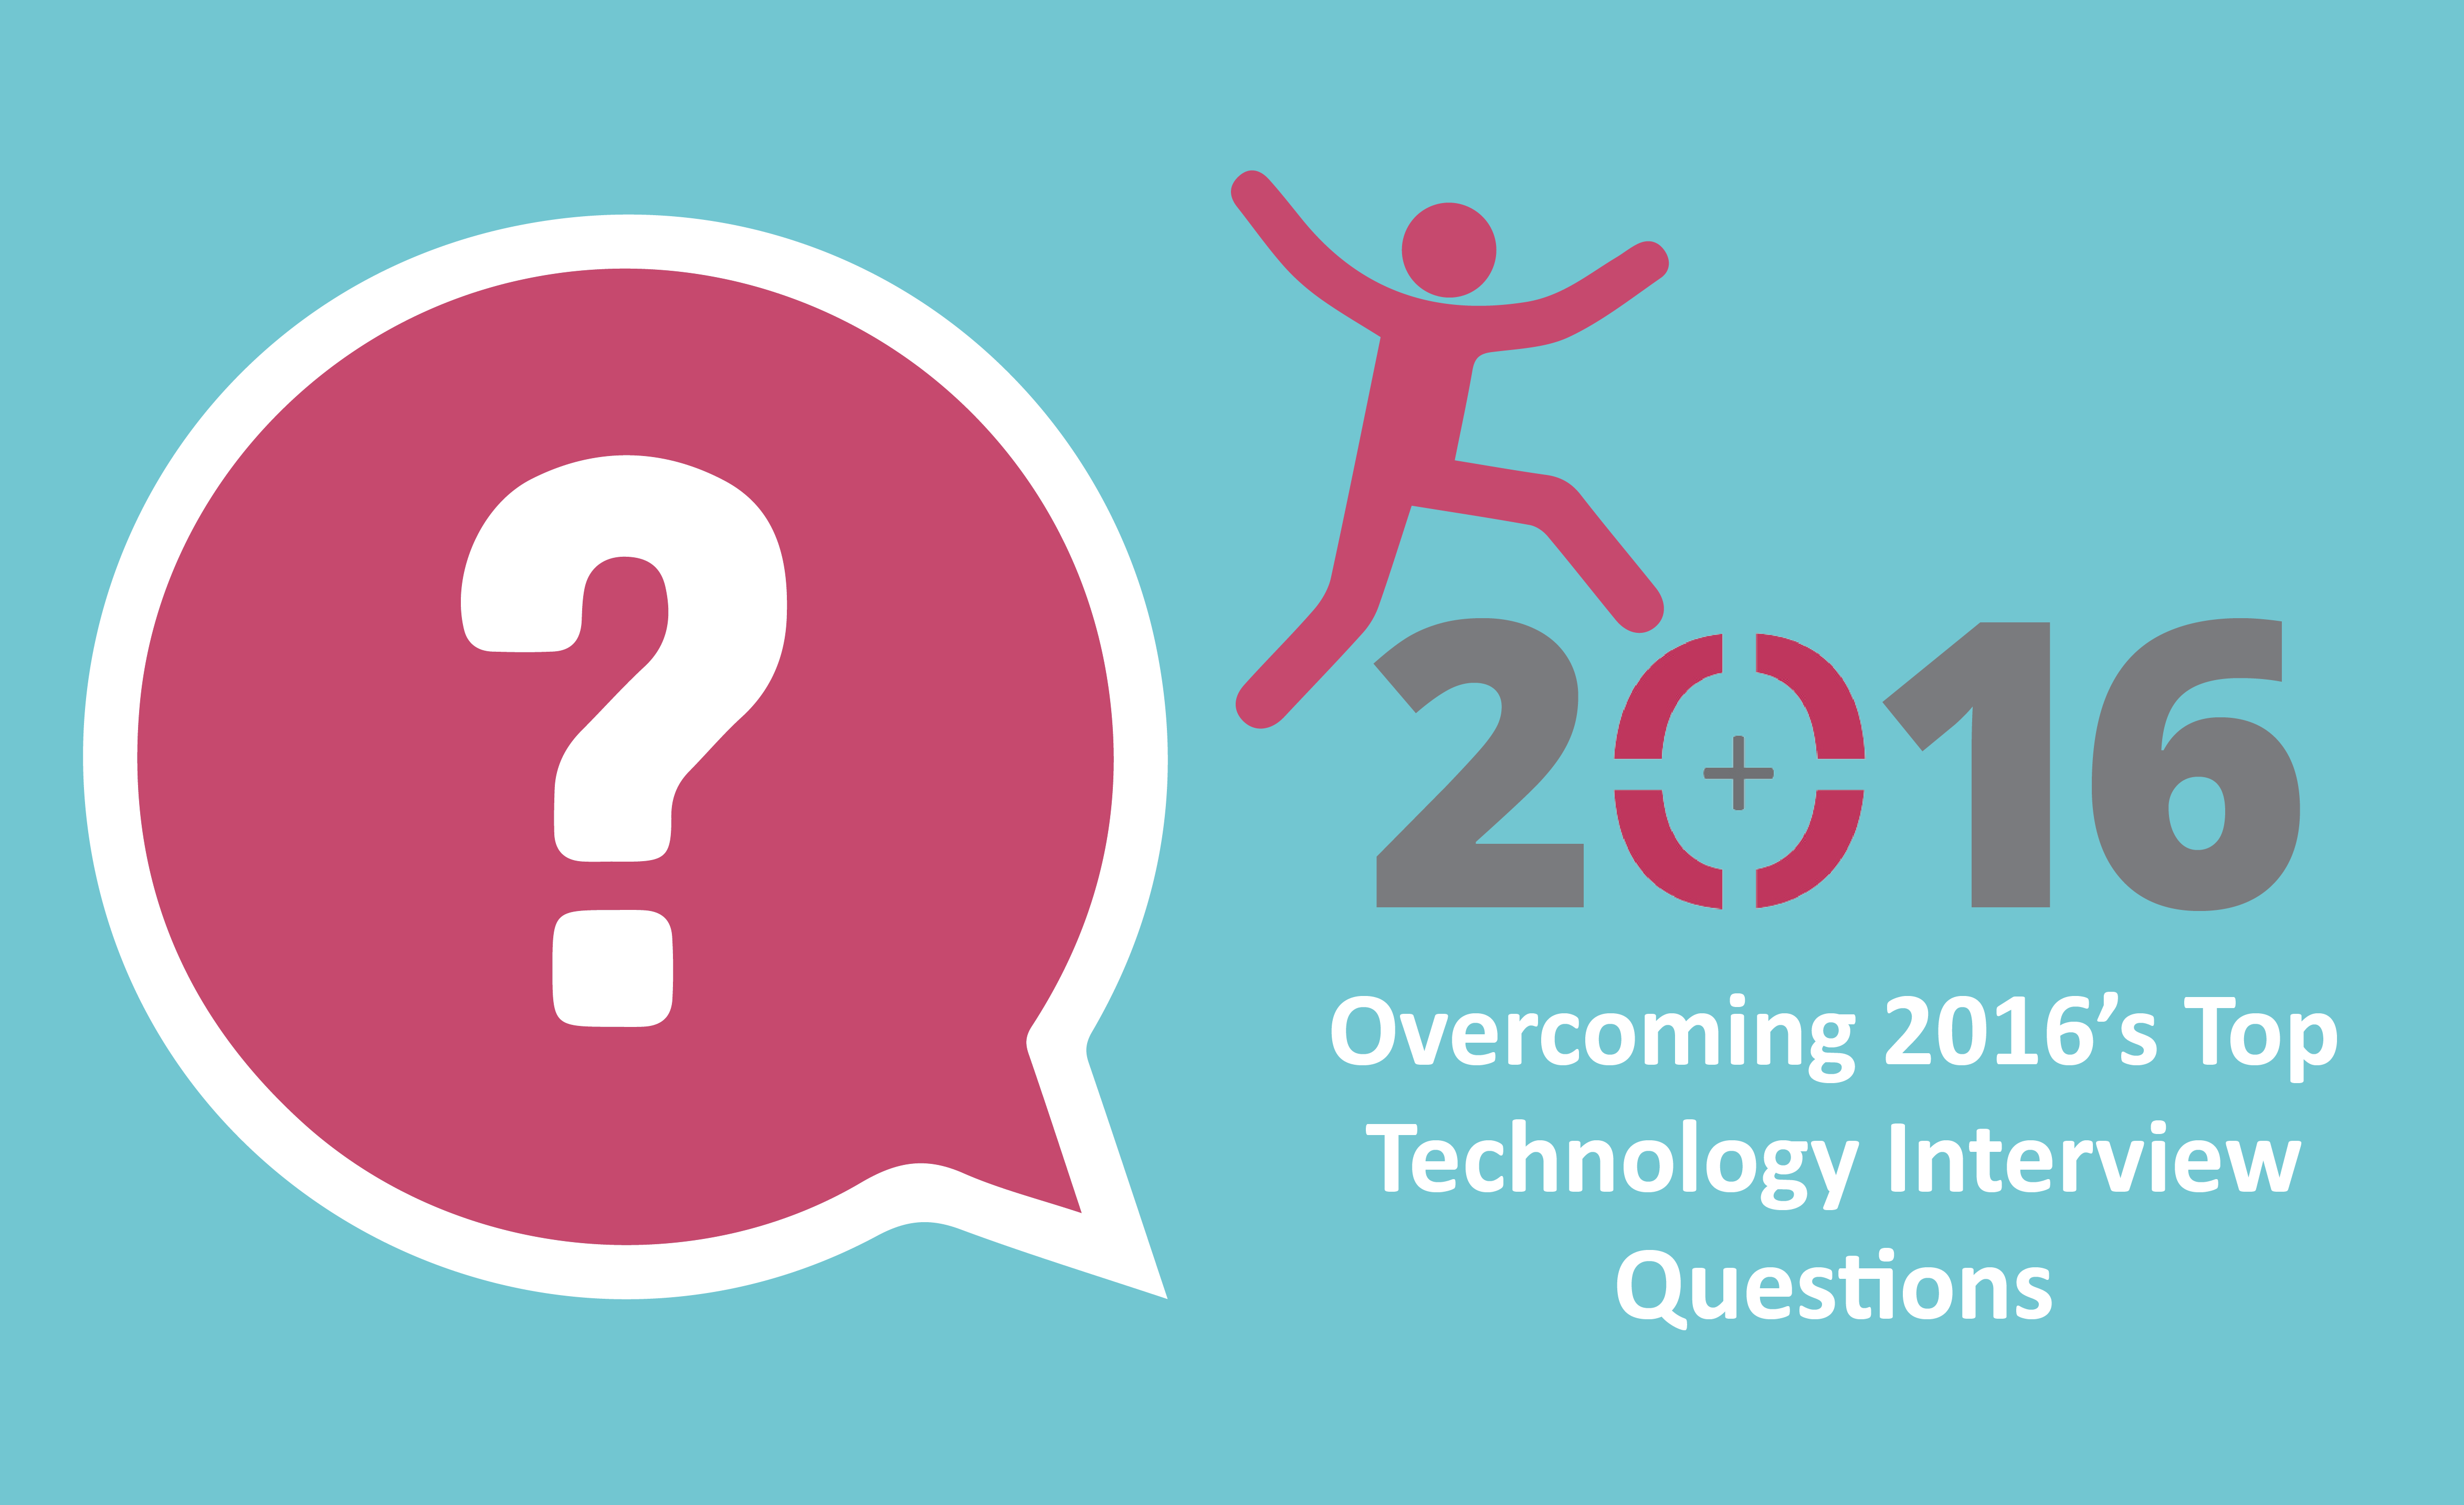 10 Technology Interview Questions for 2016 and How to Overcome Them | Sourced Christchurch IT Recruitment